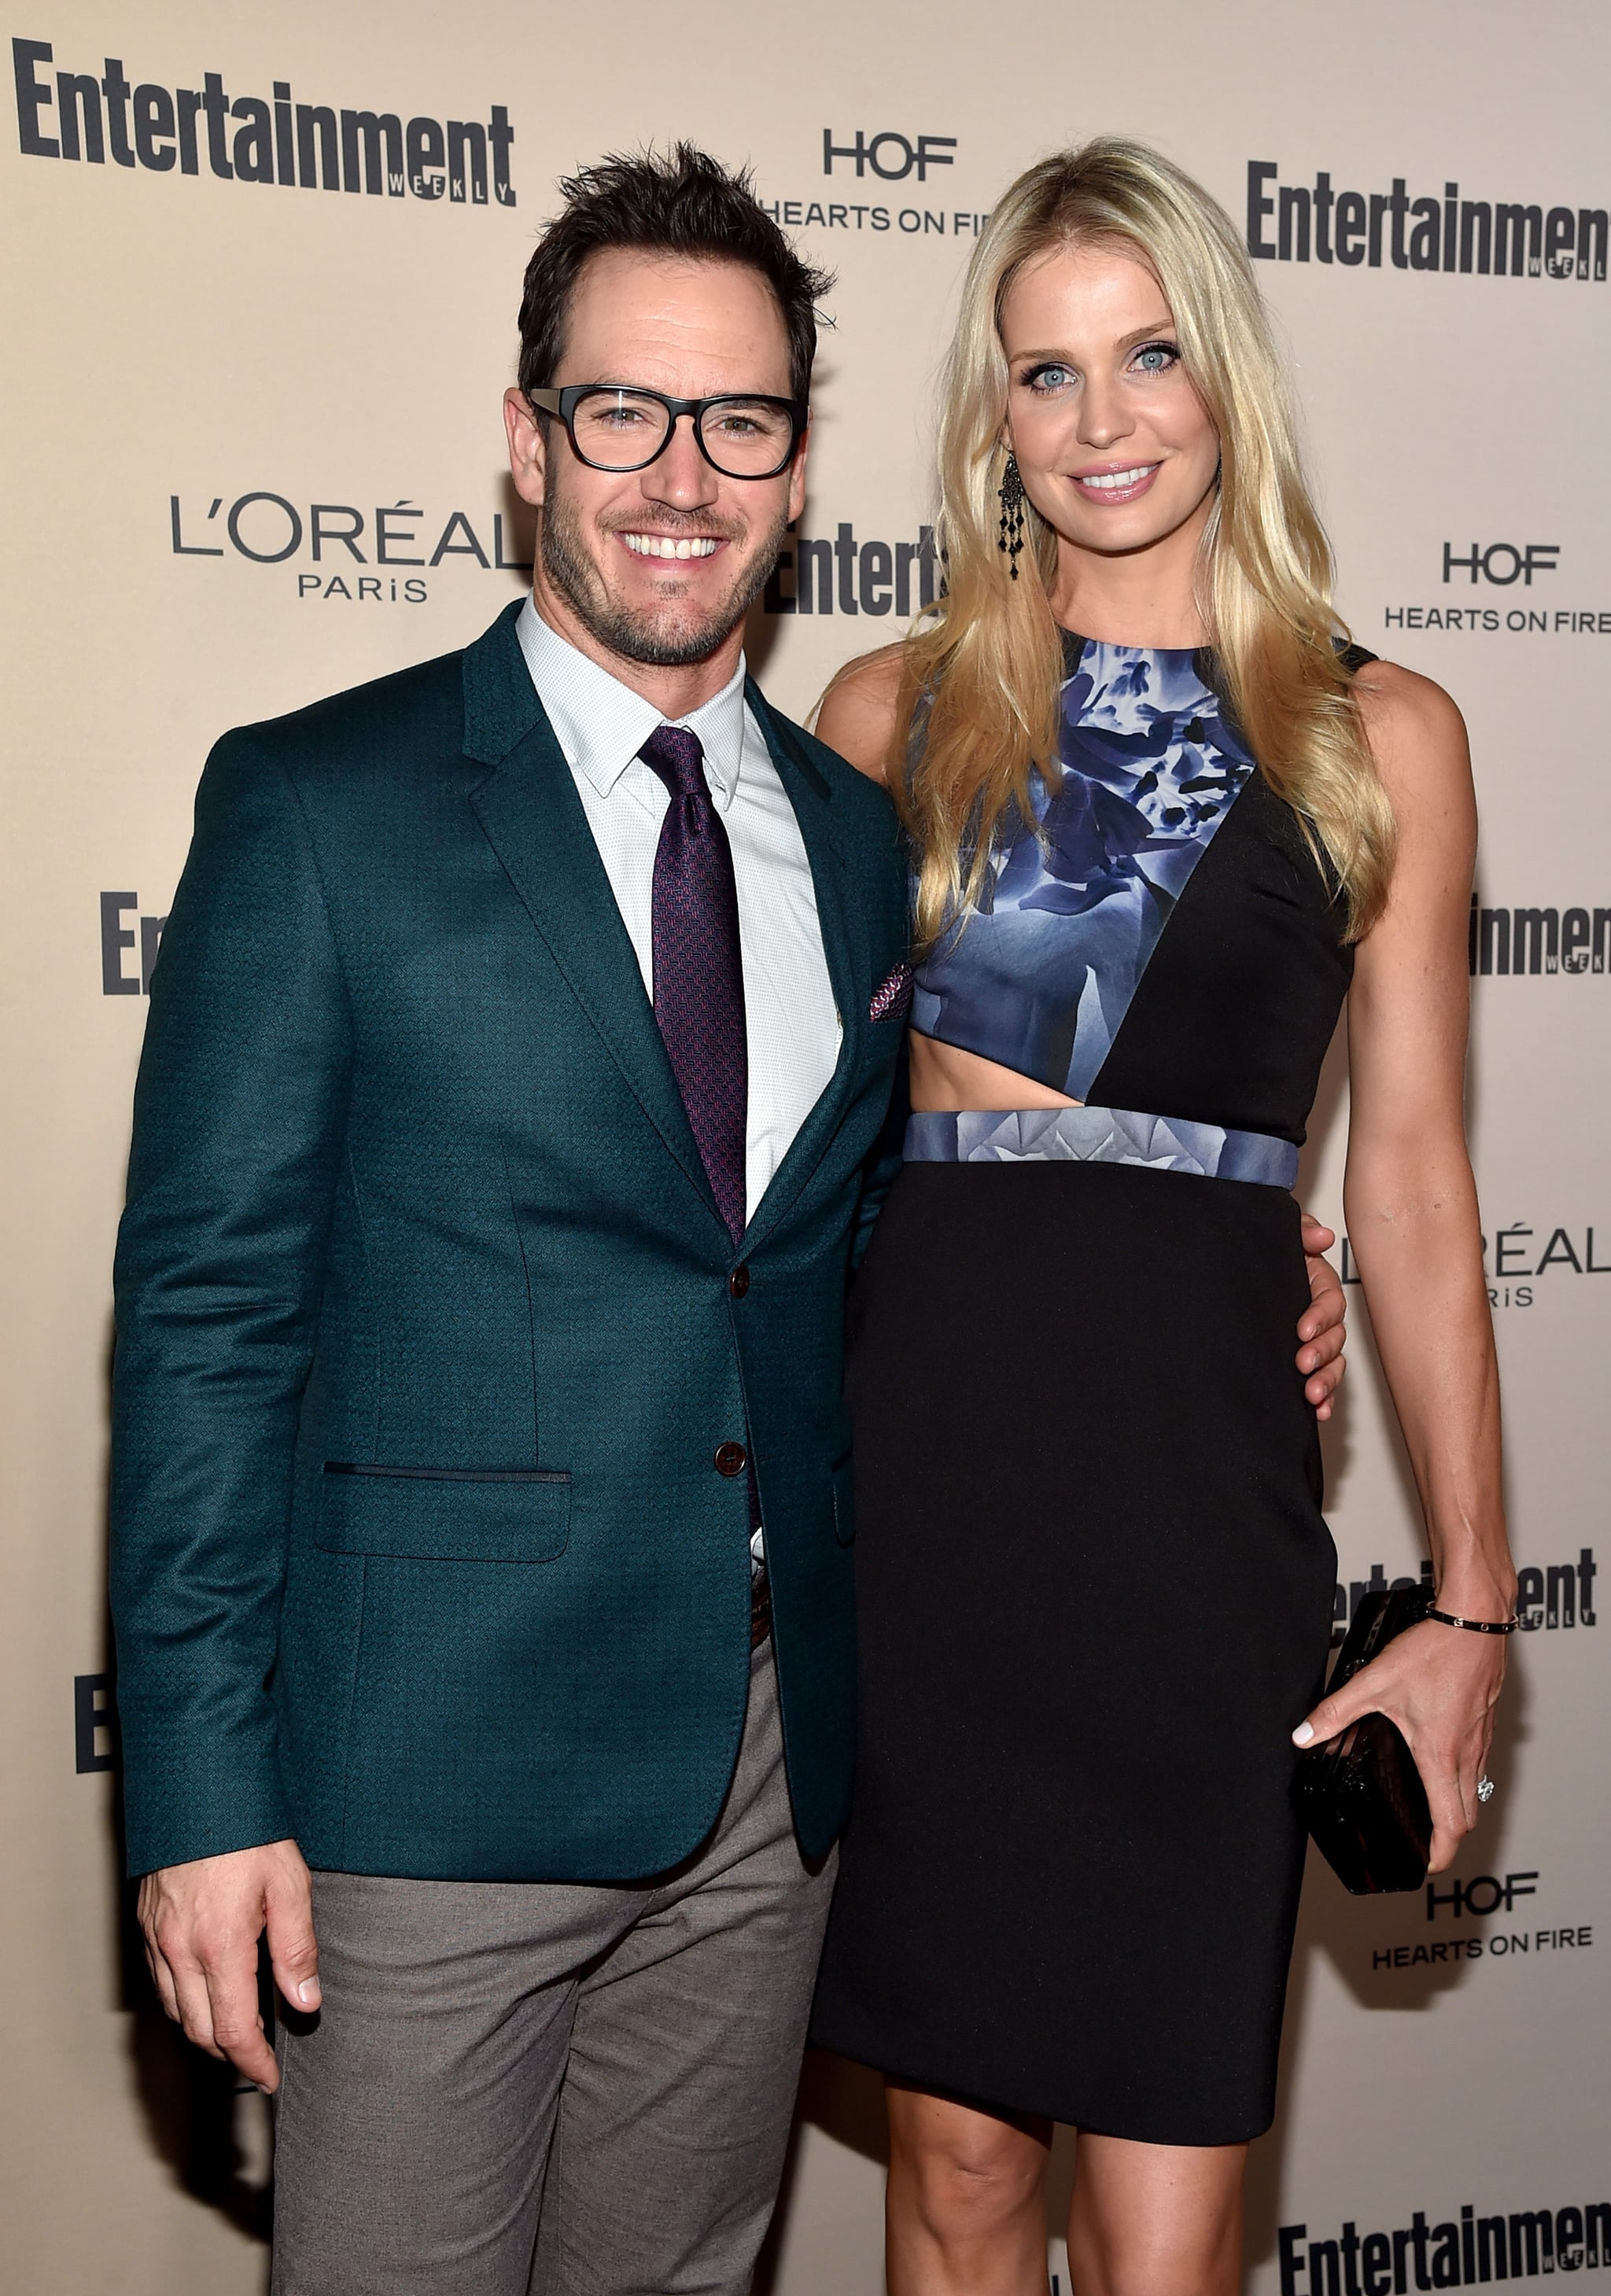 Mark Paul Gosselaar And Catriona Mcginn At Emmys Party 2015 Popsugar Celebrity This will mark the second. mark paul gosselaar and catriona mcginn